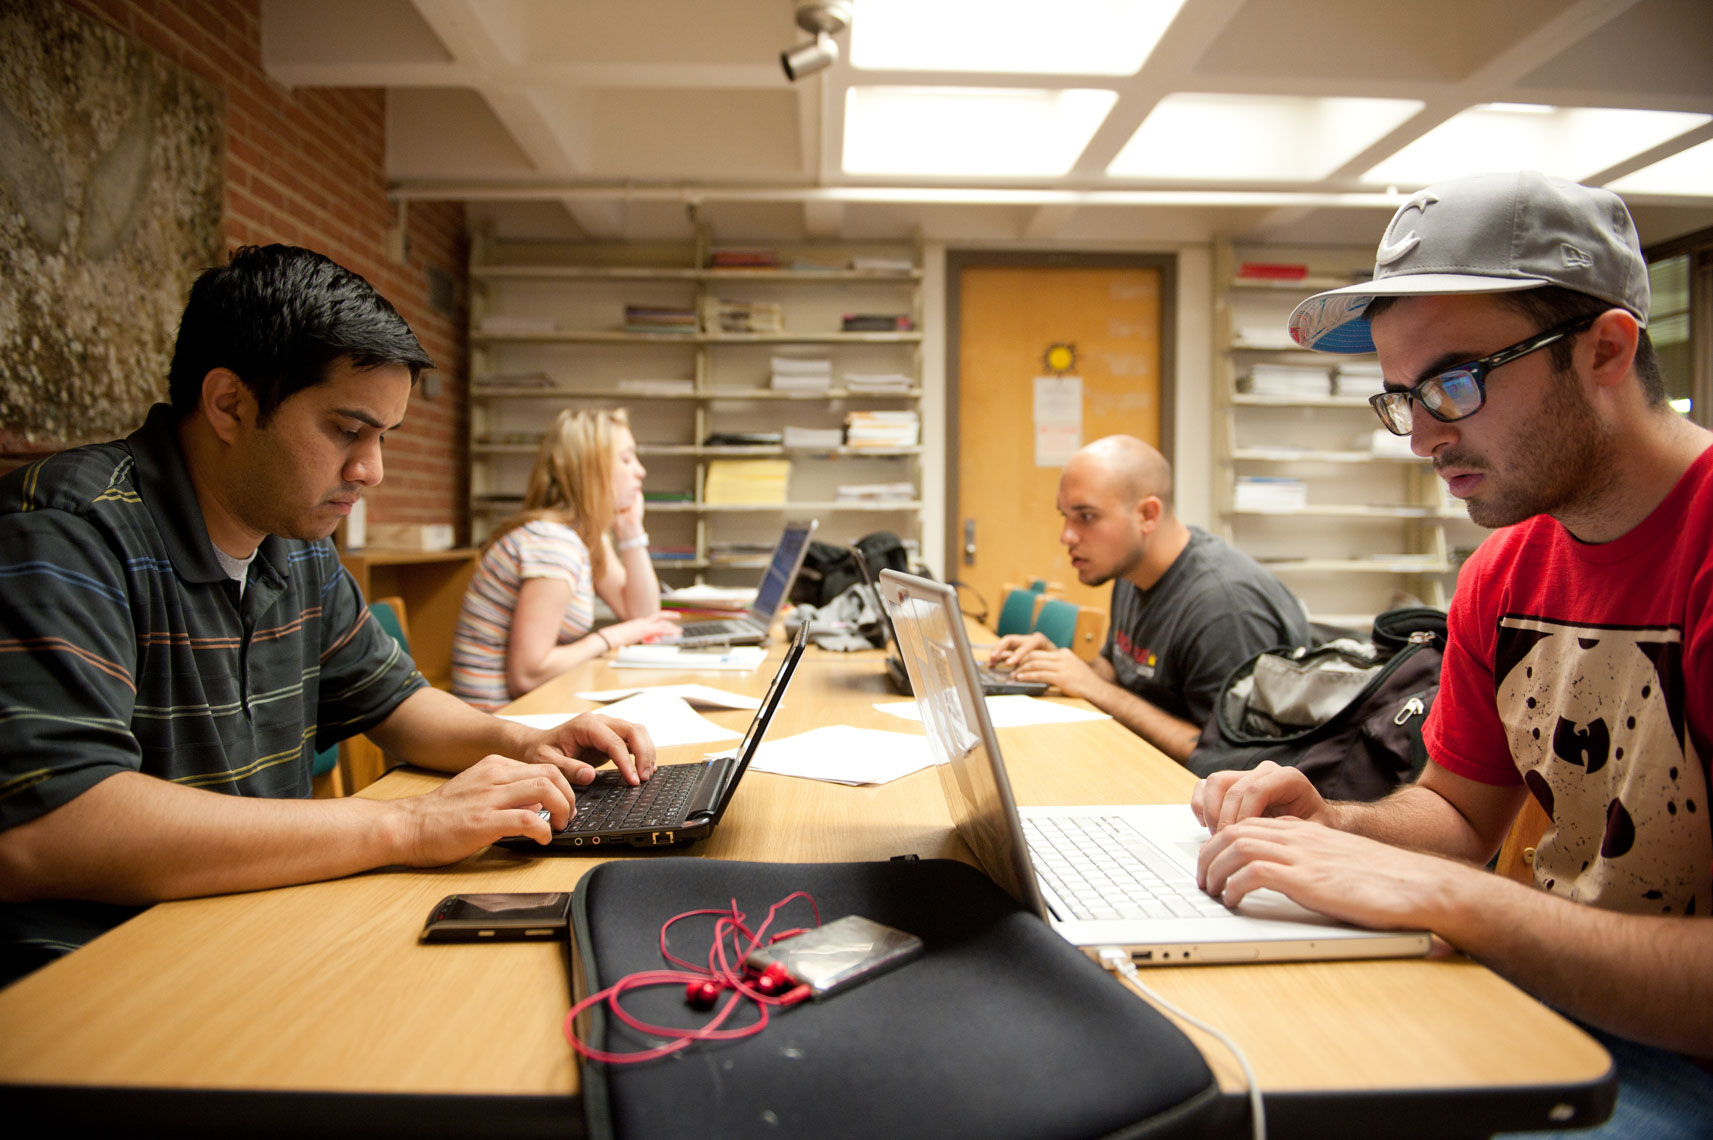 Students working at laptops at a table in the library